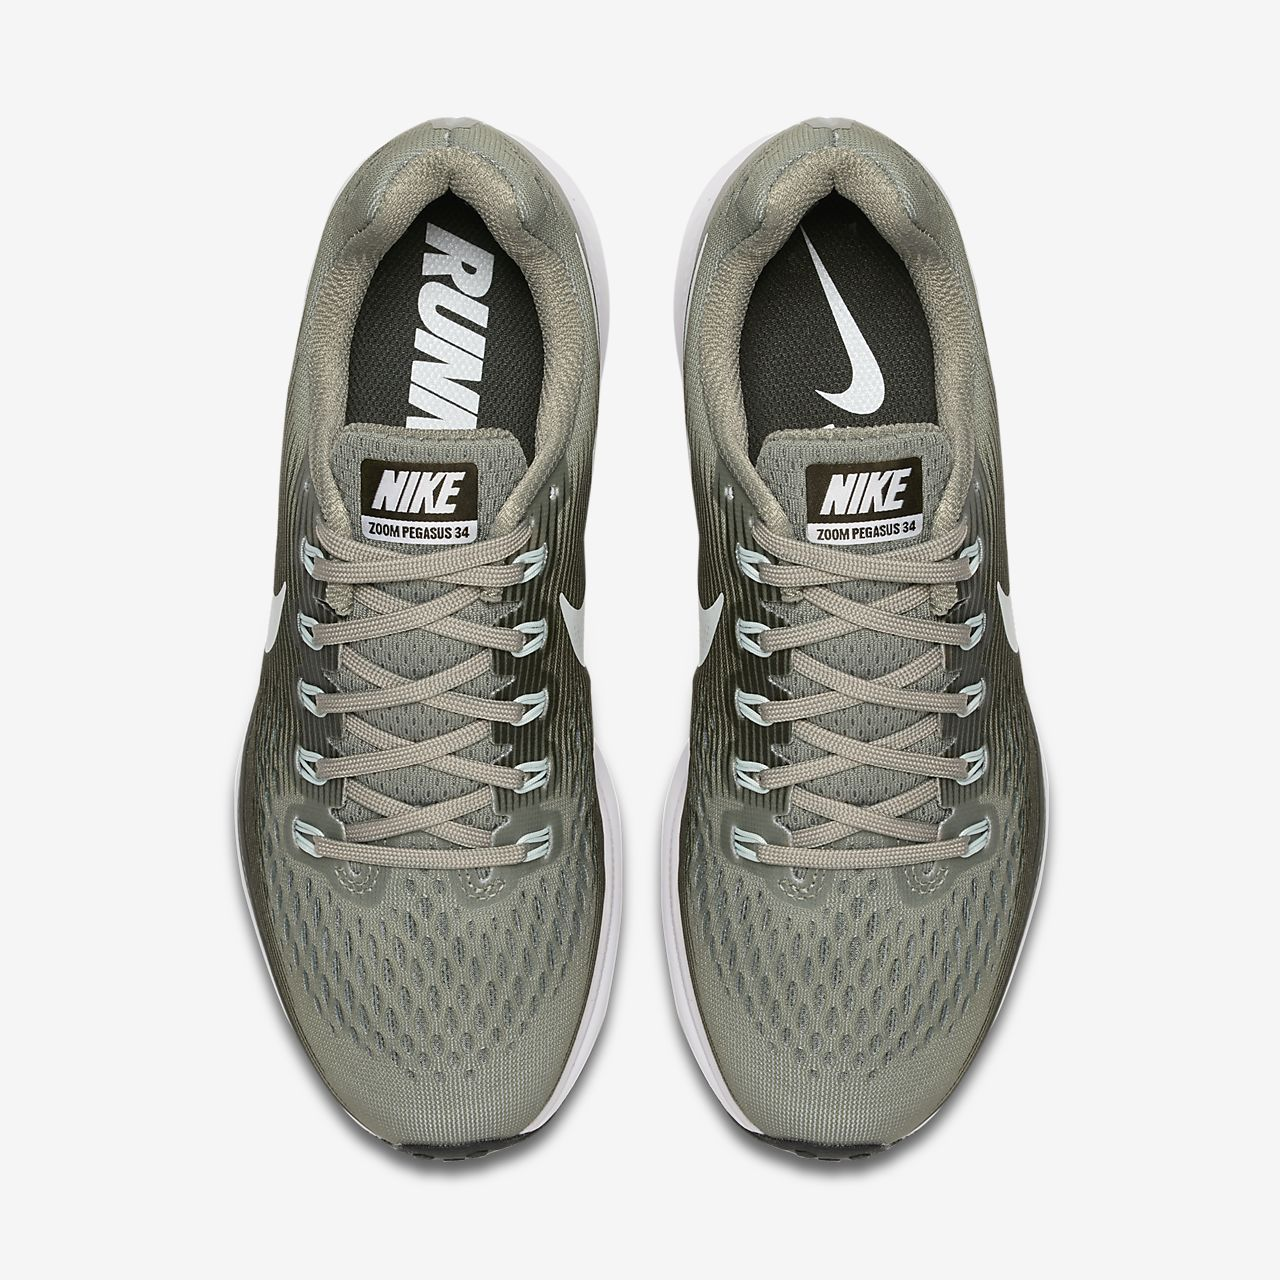 2a22758b7388 Nike Air Zoom Pegasus 34 Women s Running Shoe- Dark  Stucco Sequoia Black Barely Grey